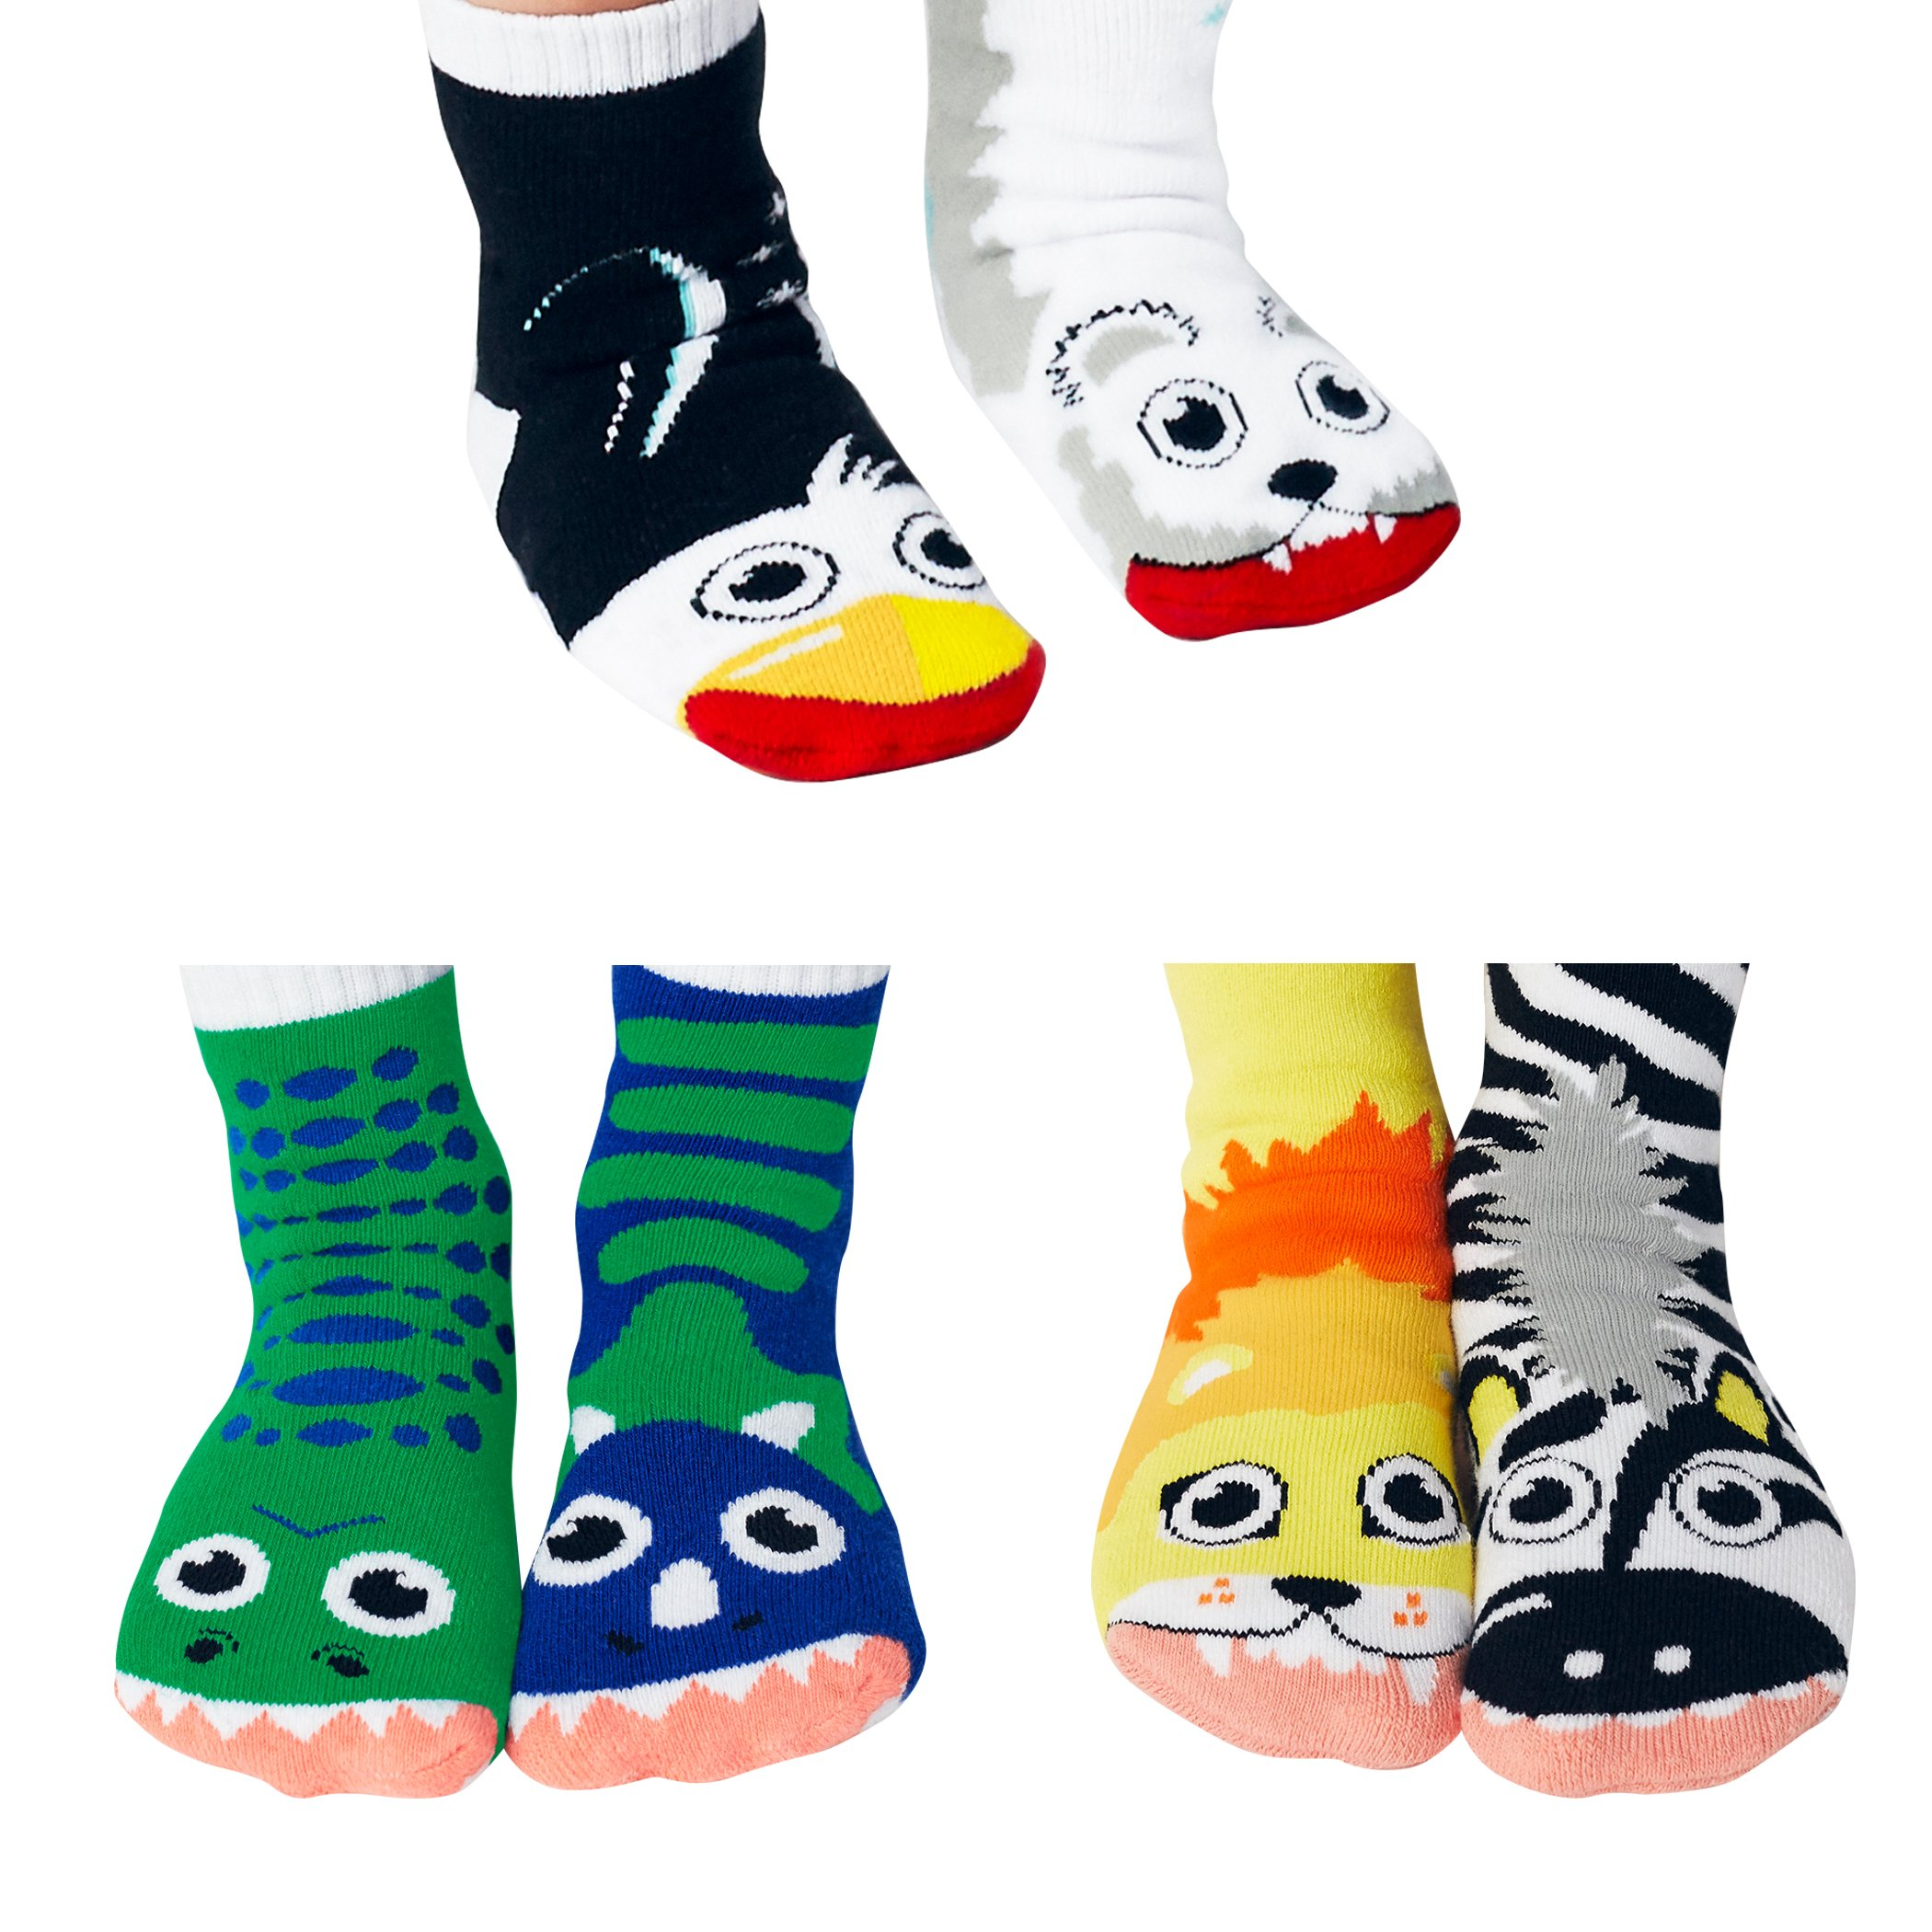 Lion and Zebra, T-Rex and Triceratops, Polar Bear and Penguin - Toddler Sock Set - Mighty Mates Mismatched Friends 3-Pack by Pals Socks (Image #1)